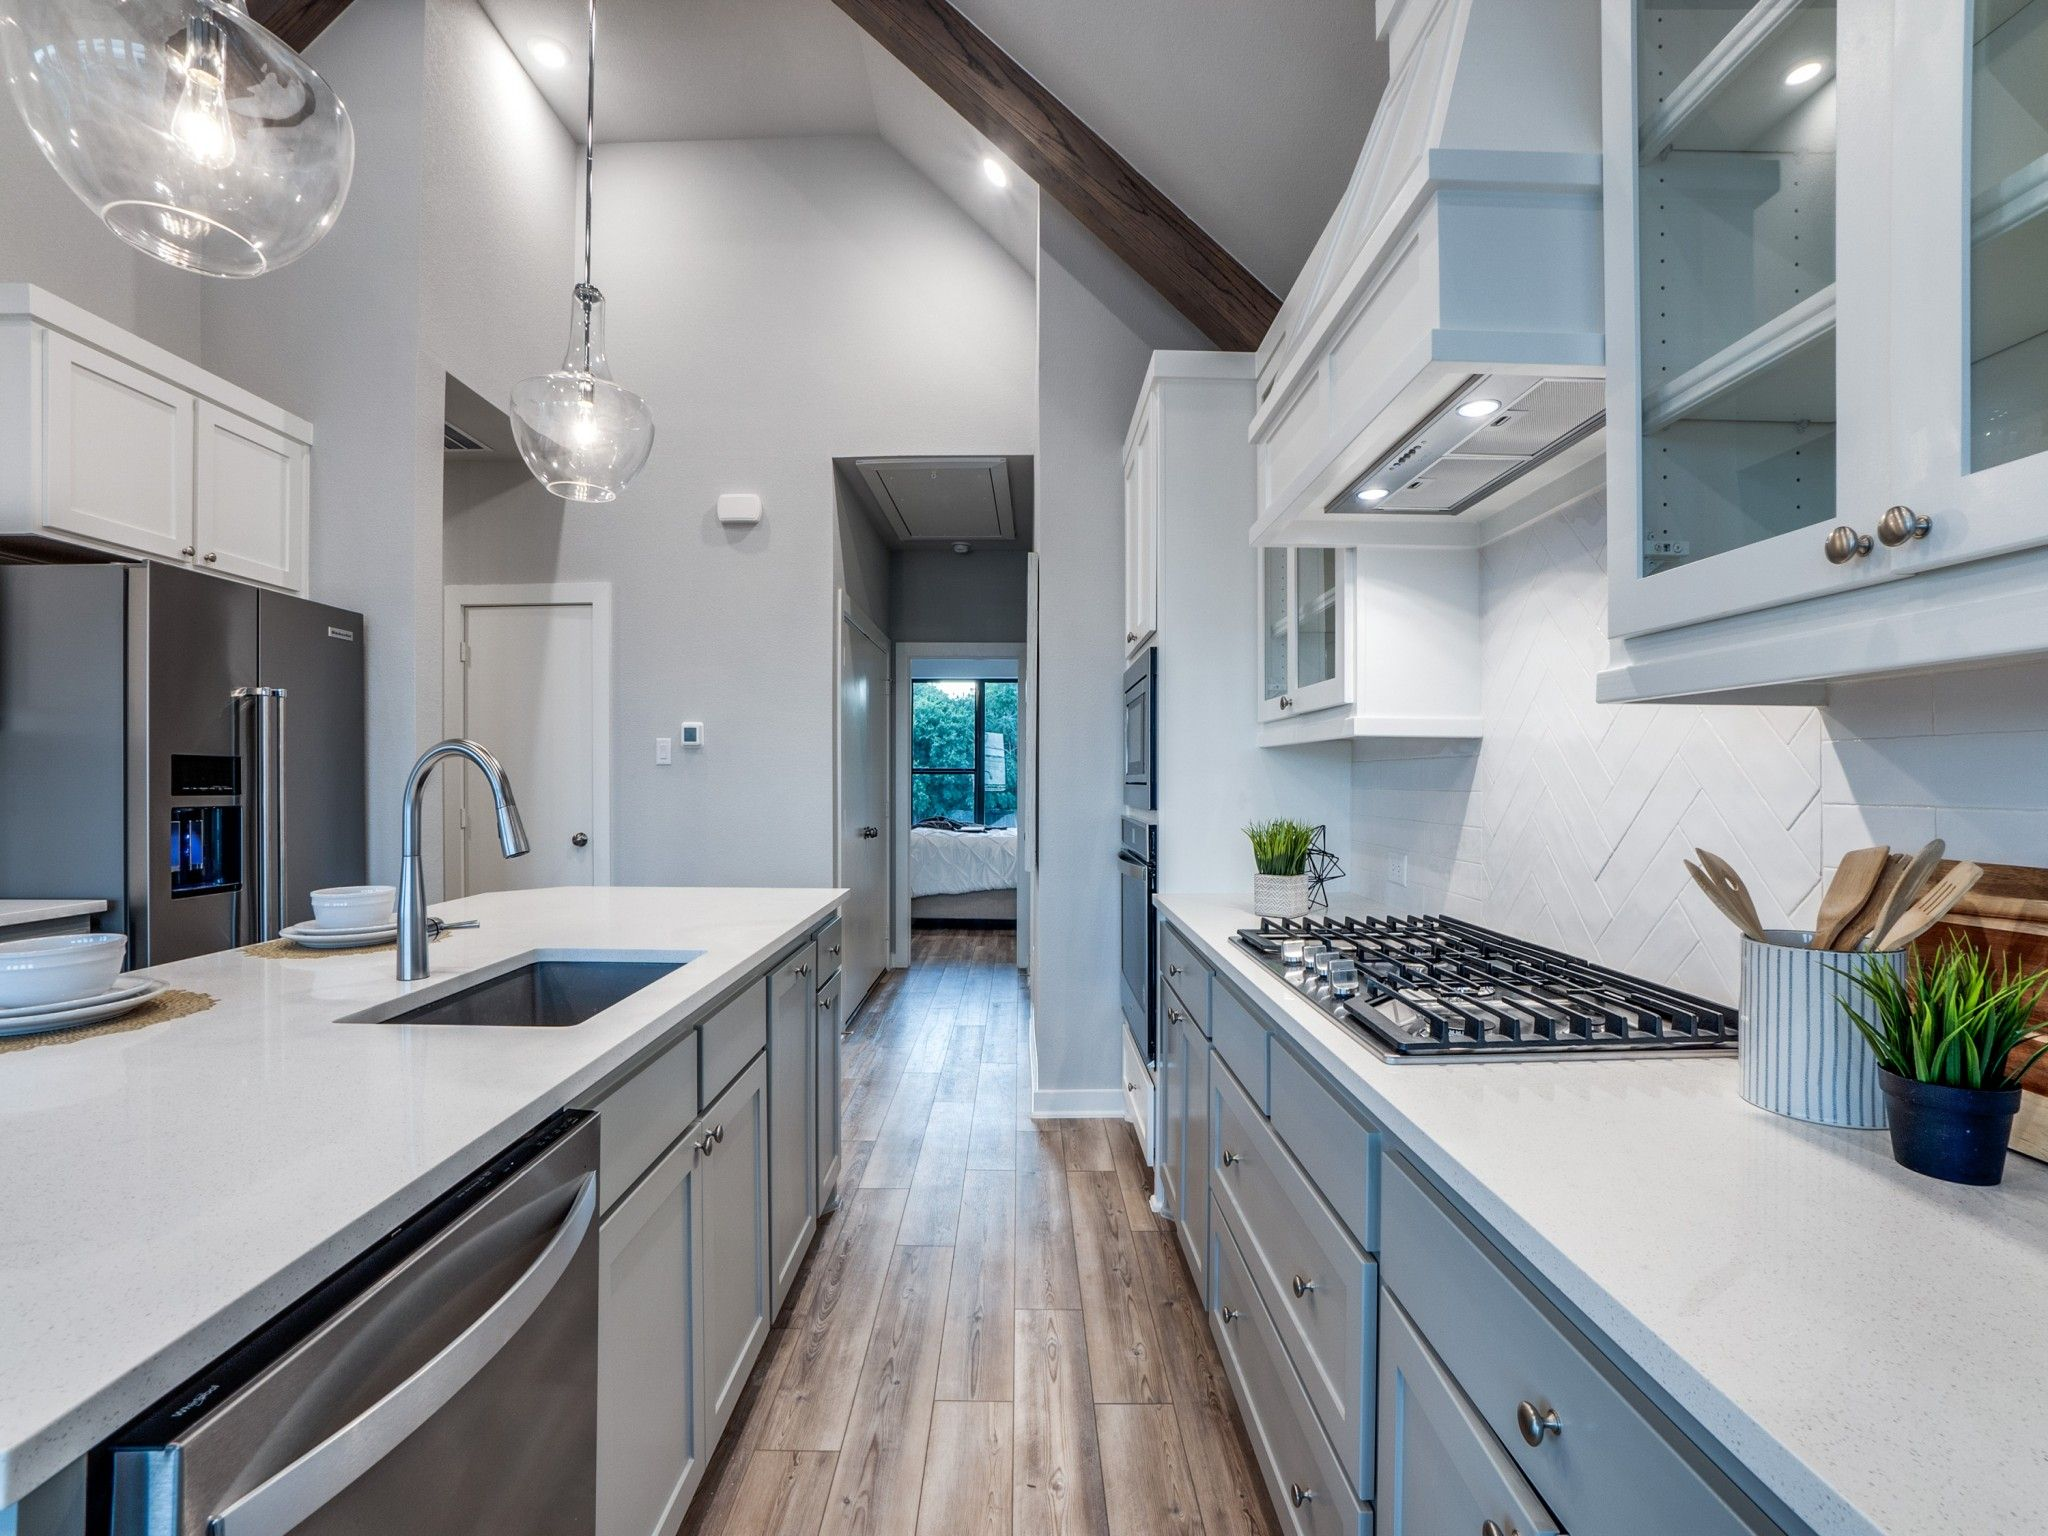 Kitchen featured in the Mulholland By Centre Living Homes in Dallas, TX